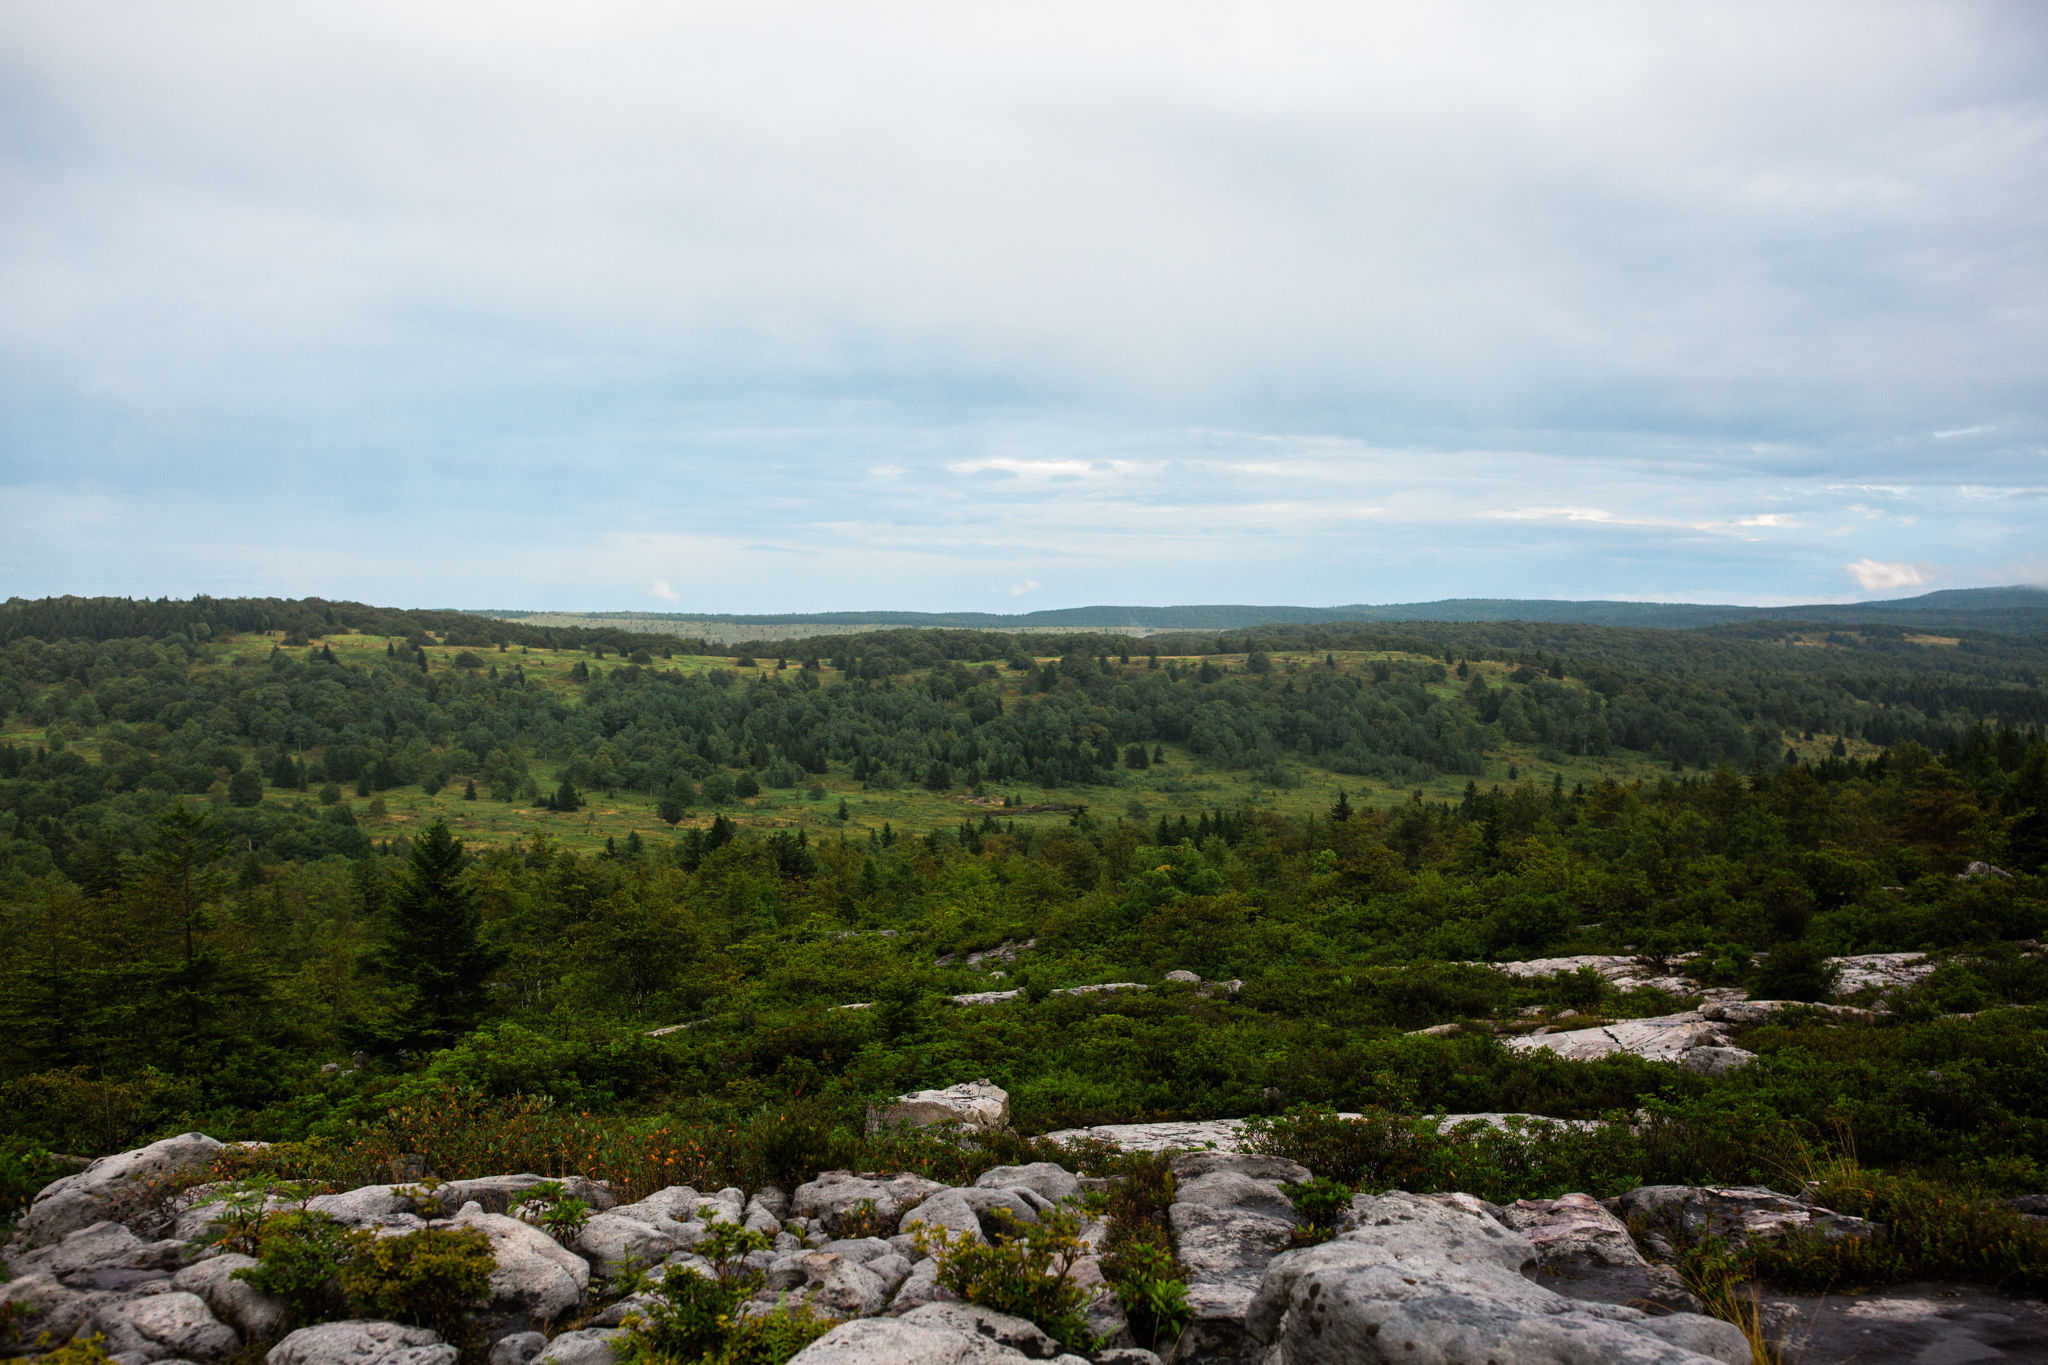 Hiking in Dolly Sods West Virginia, West Virginia adventure photographer, Dolly Sods adventures, rainy day adventures, rainy hike. The view just off path during a rainy Dolly Sods backpacking trip